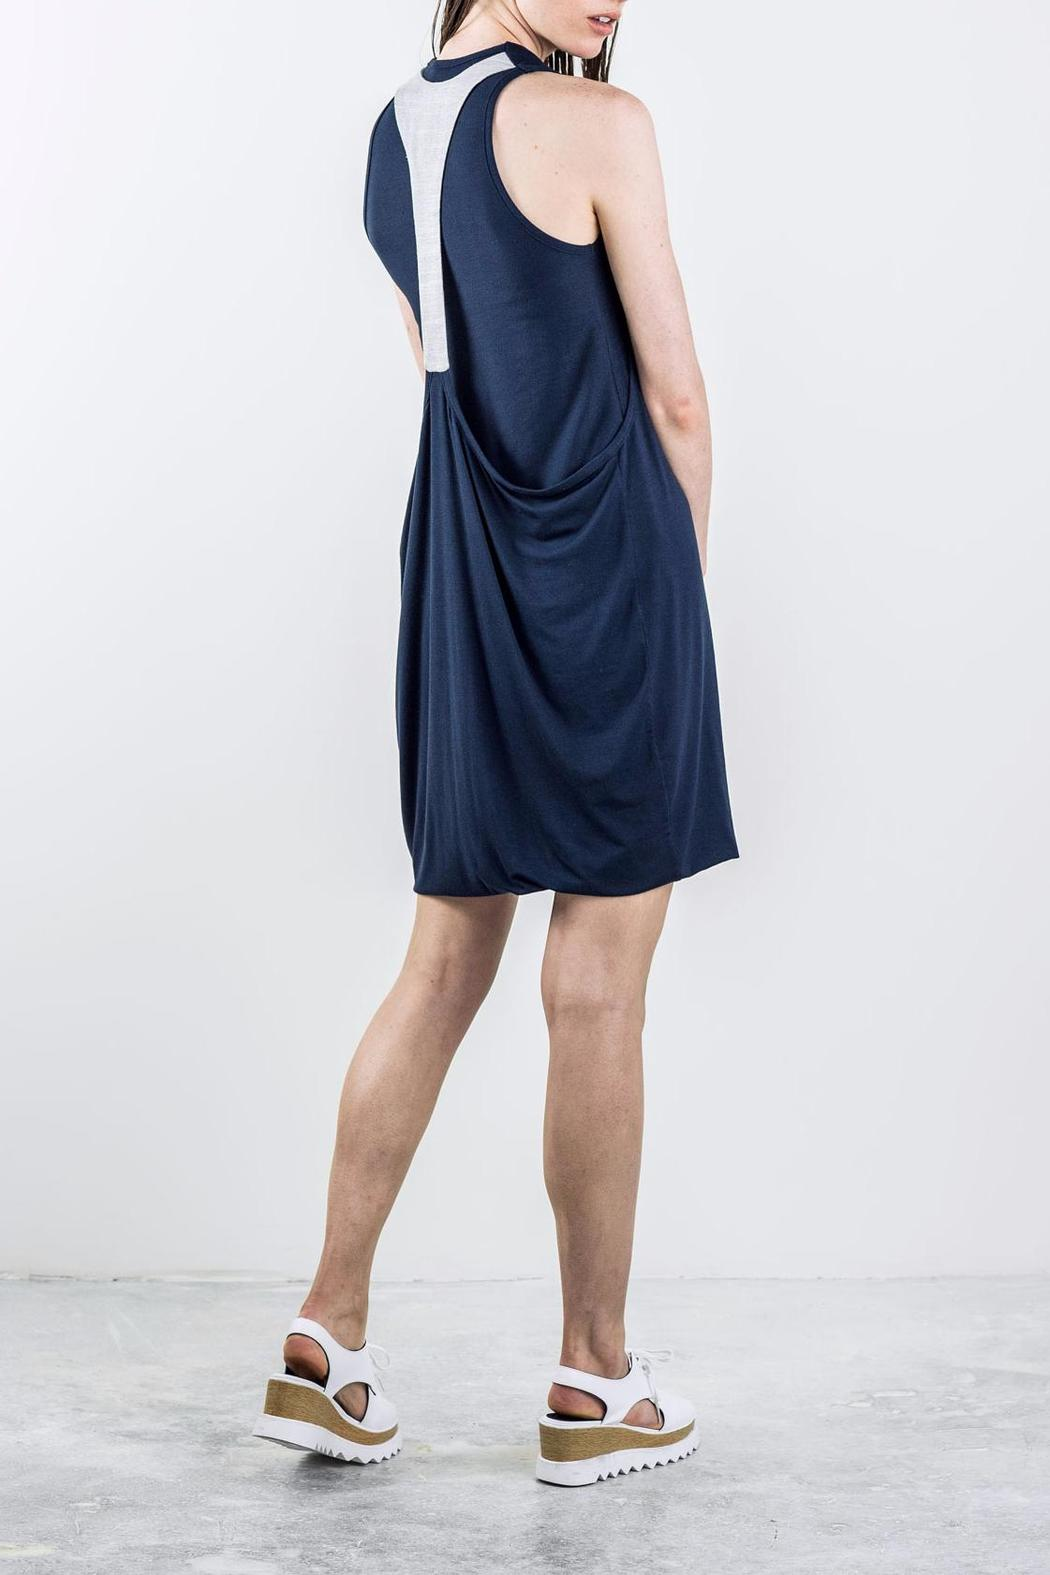 Bodybag by Jude Draped Sleeveless Dress - Front Full Image